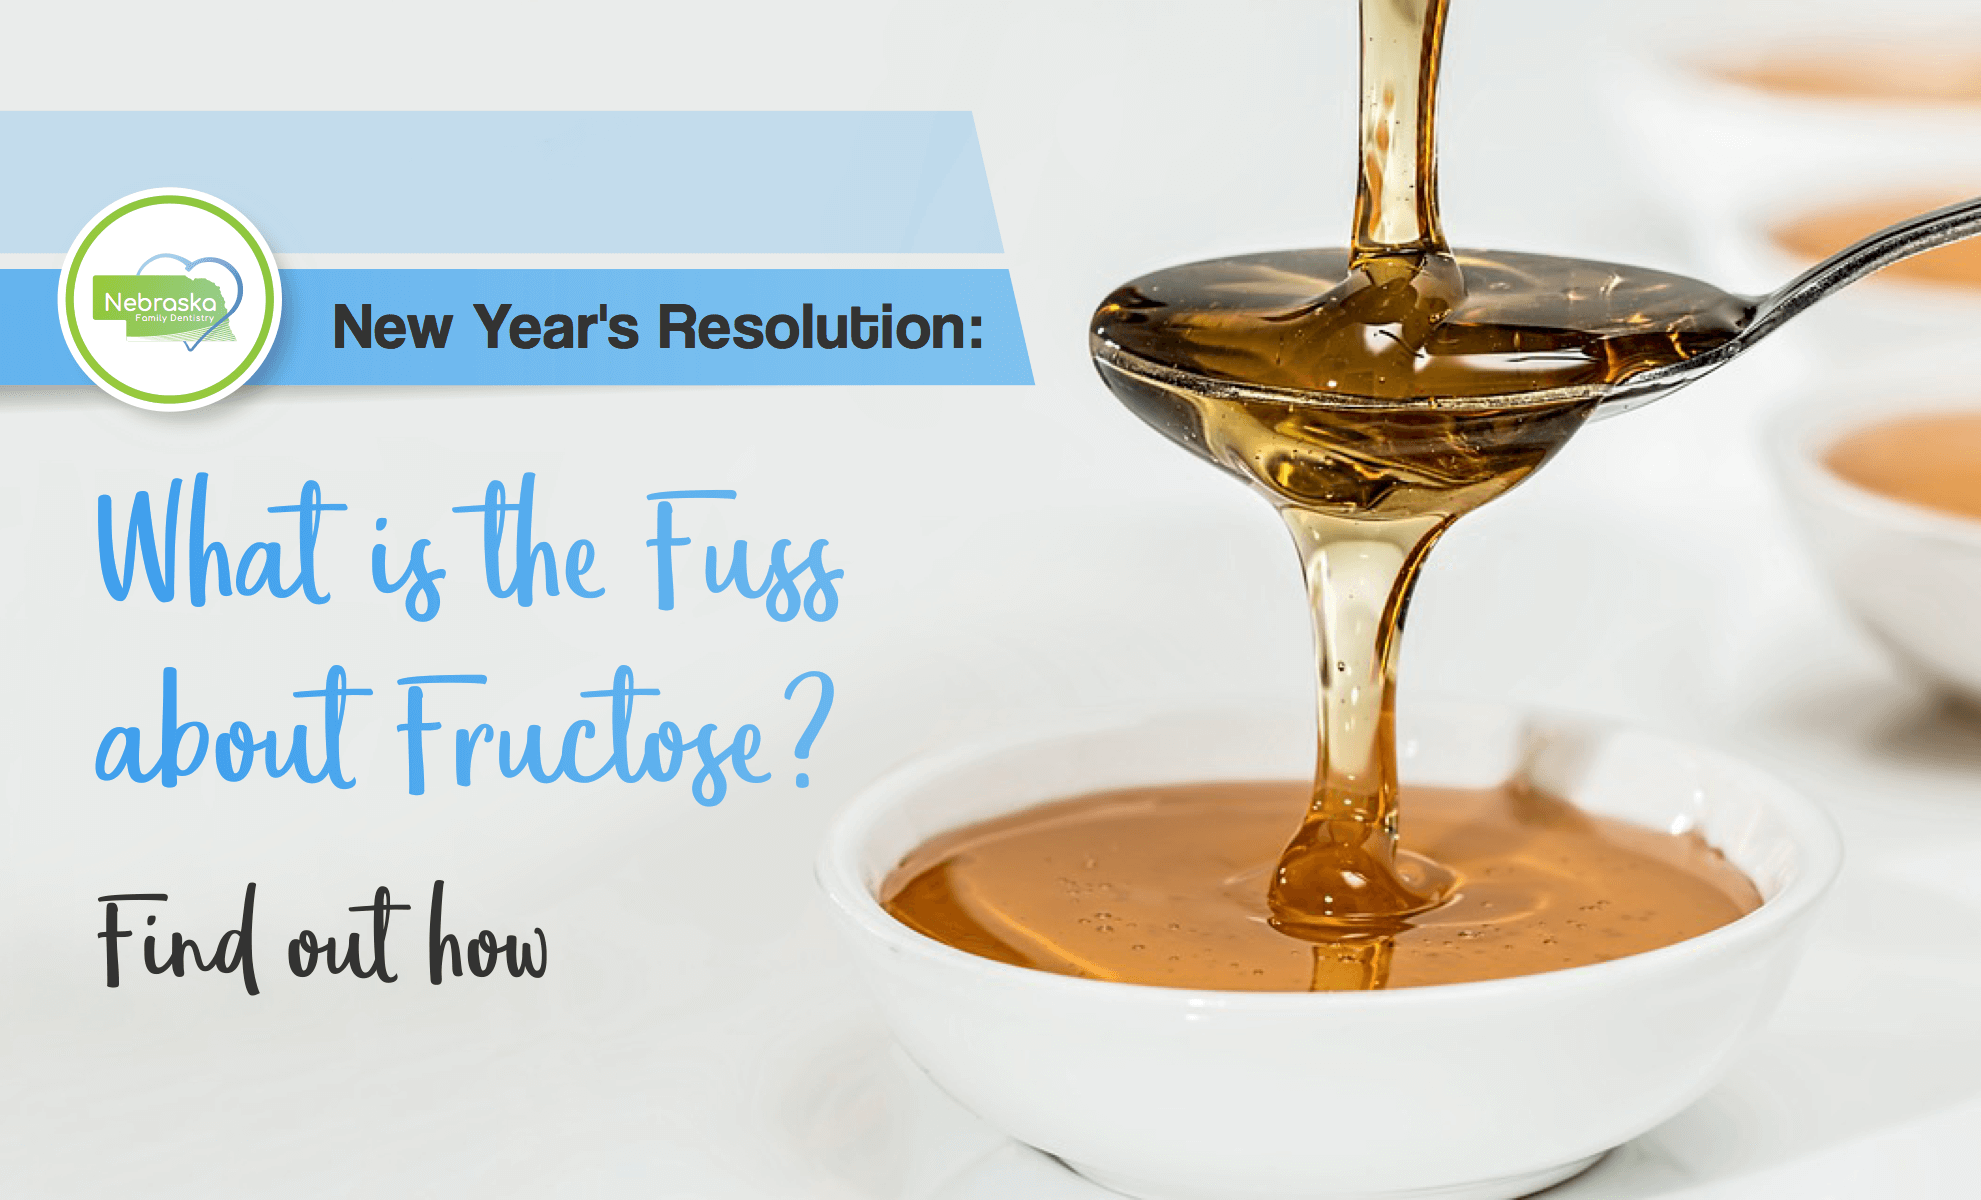 image of honey with sugar/fructose and ideas for the best new year's resolution from dentist in Lincoln area, Dr. Brad Alderman